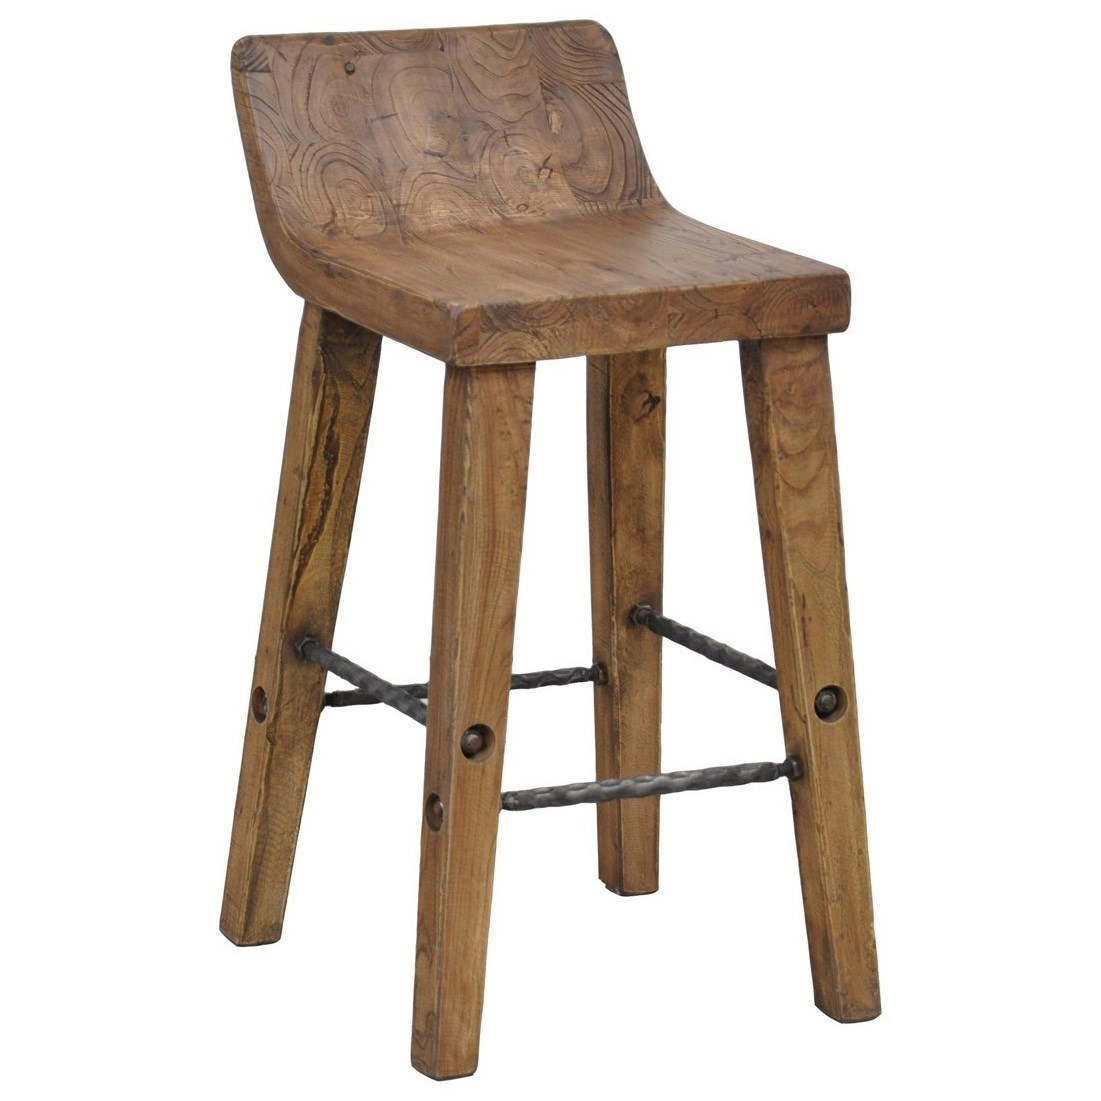 Low Back Counter Stool